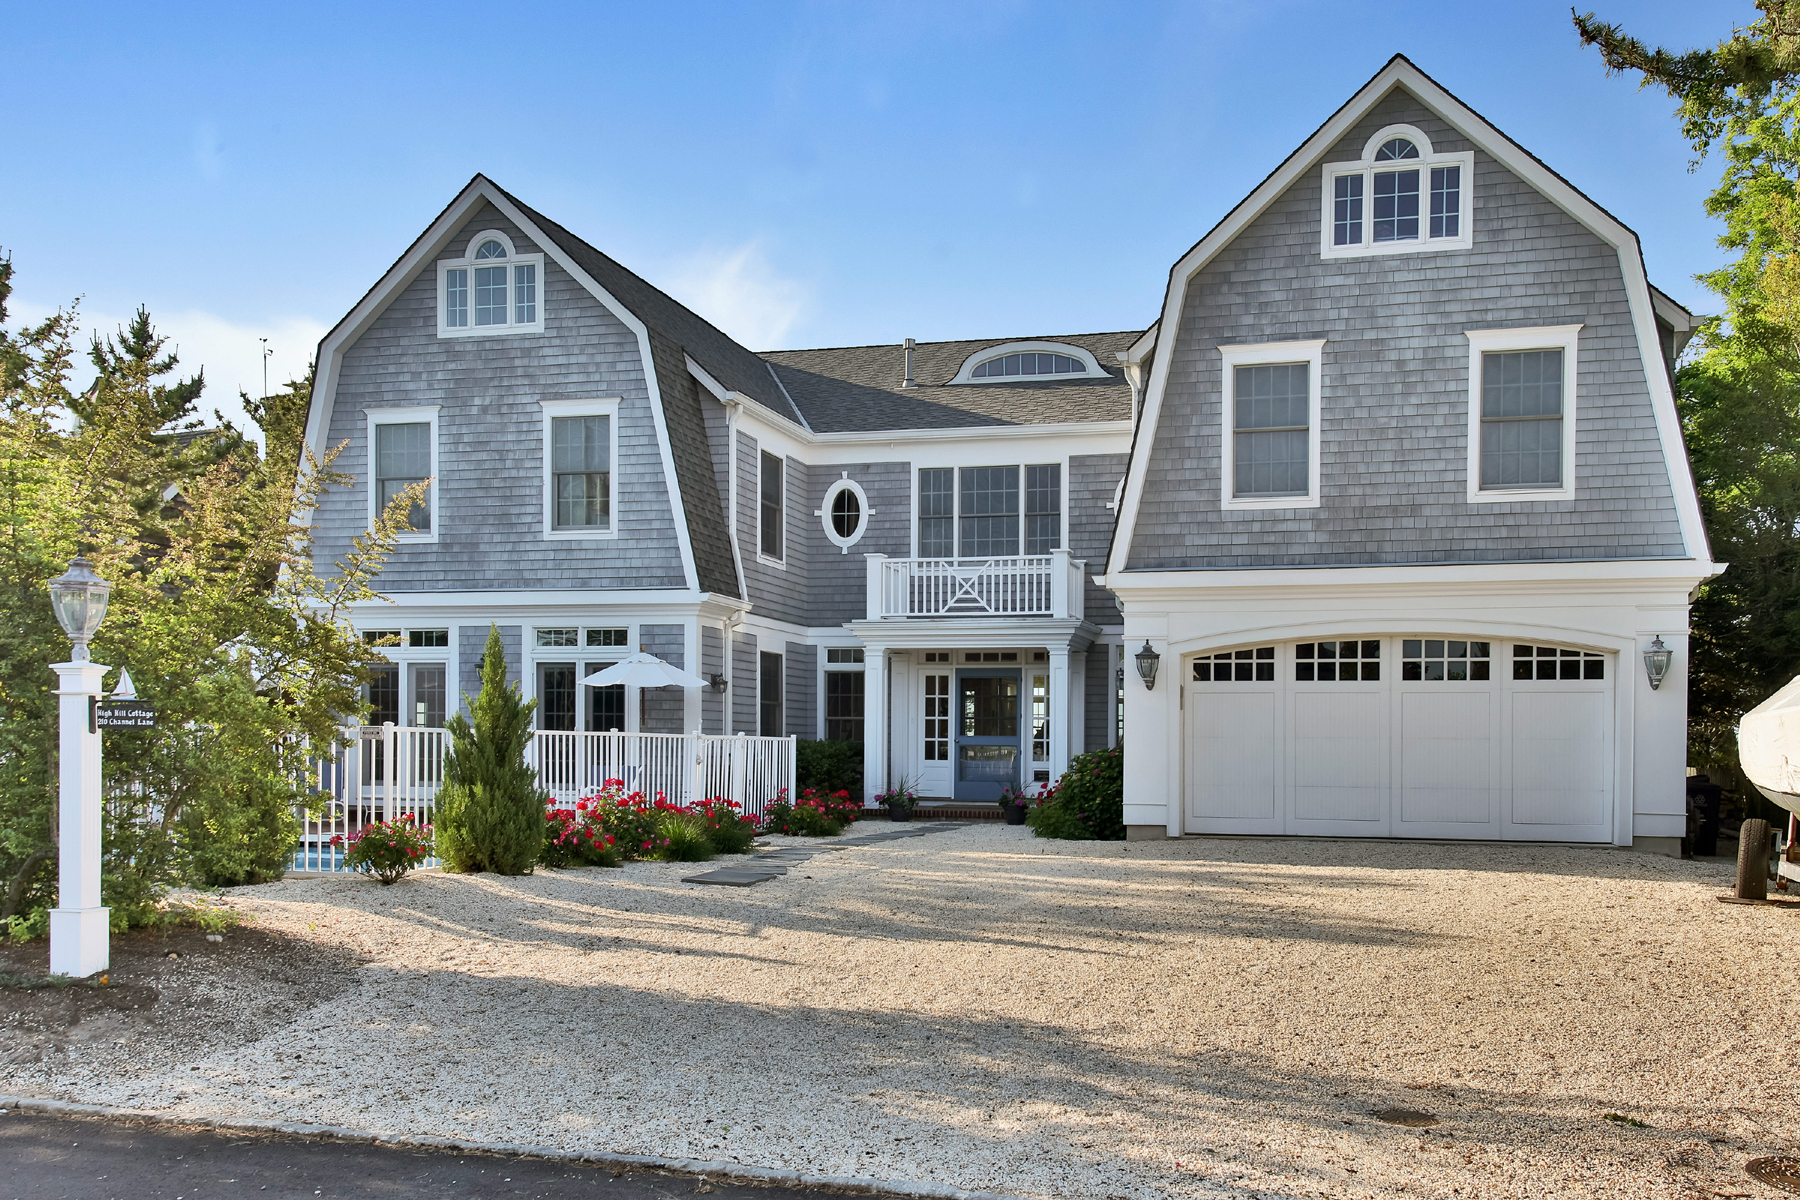 Single Family Home for Sale at Experience The Ambiance Of Open Water Views Capturing Light From Every Angle 210 Channel Lane Mantoloking, New Jersey 08738 United States